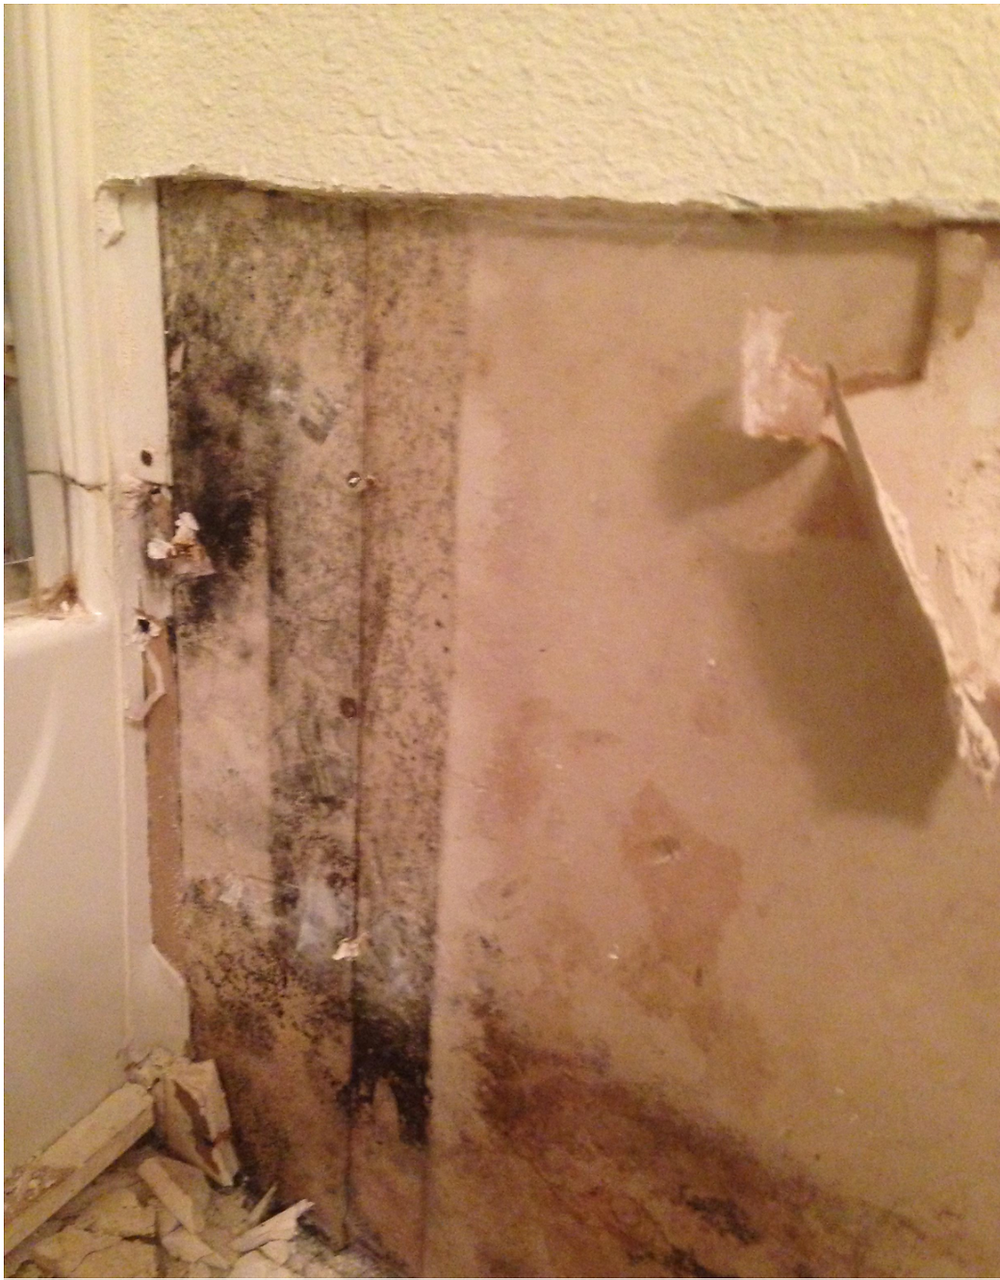 Mold growth behind a refrigerator